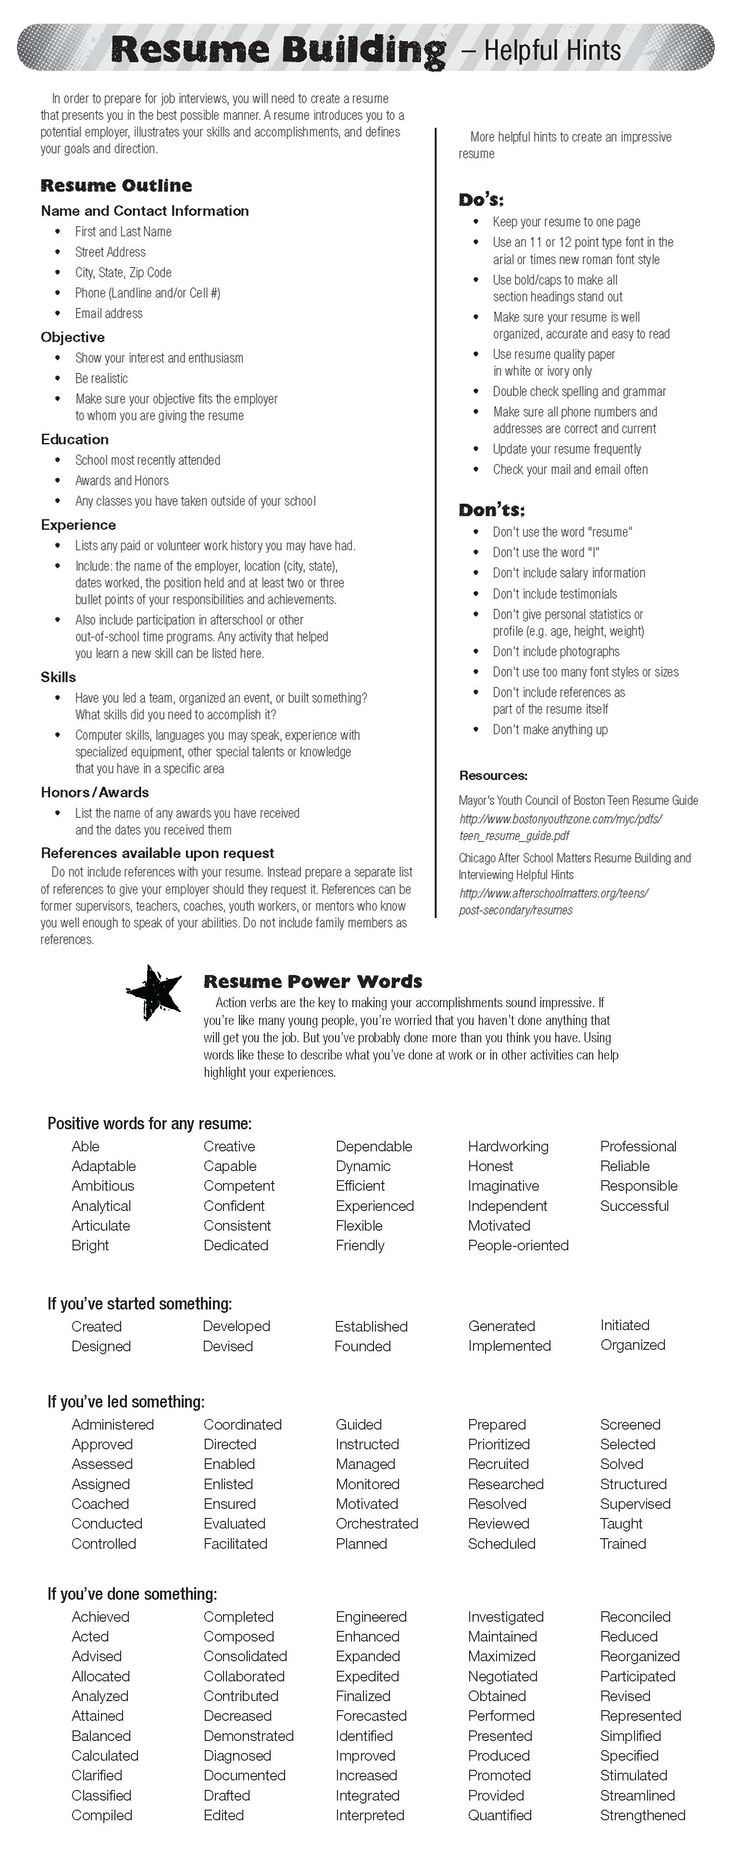 Opposenewapstandardsus  Pleasing  Ideas About Resume On Pinterest  Cv Format Resume Cv And  With Fair  Ideas About Resume On Pinterest  Cv Format Resume Cv And Resume Templates With Beautiful Examples Of Dental Assistant Resumes Also Resume Tenplate In Addition Digital Marketing Resume Sample And Agile Methodology Resume As Well As Resume Helper Builder Additionally College Grad Resume Examples From Pinterestcom With Opposenewapstandardsus  Fair  Ideas About Resume On Pinterest  Cv Format Resume Cv And  With Beautiful  Ideas About Resume On Pinterest  Cv Format Resume Cv And Resume Templates And Pleasing Examples Of Dental Assistant Resumes Also Resume Tenplate In Addition Digital Marketing Resume Sample From Pinterestcom